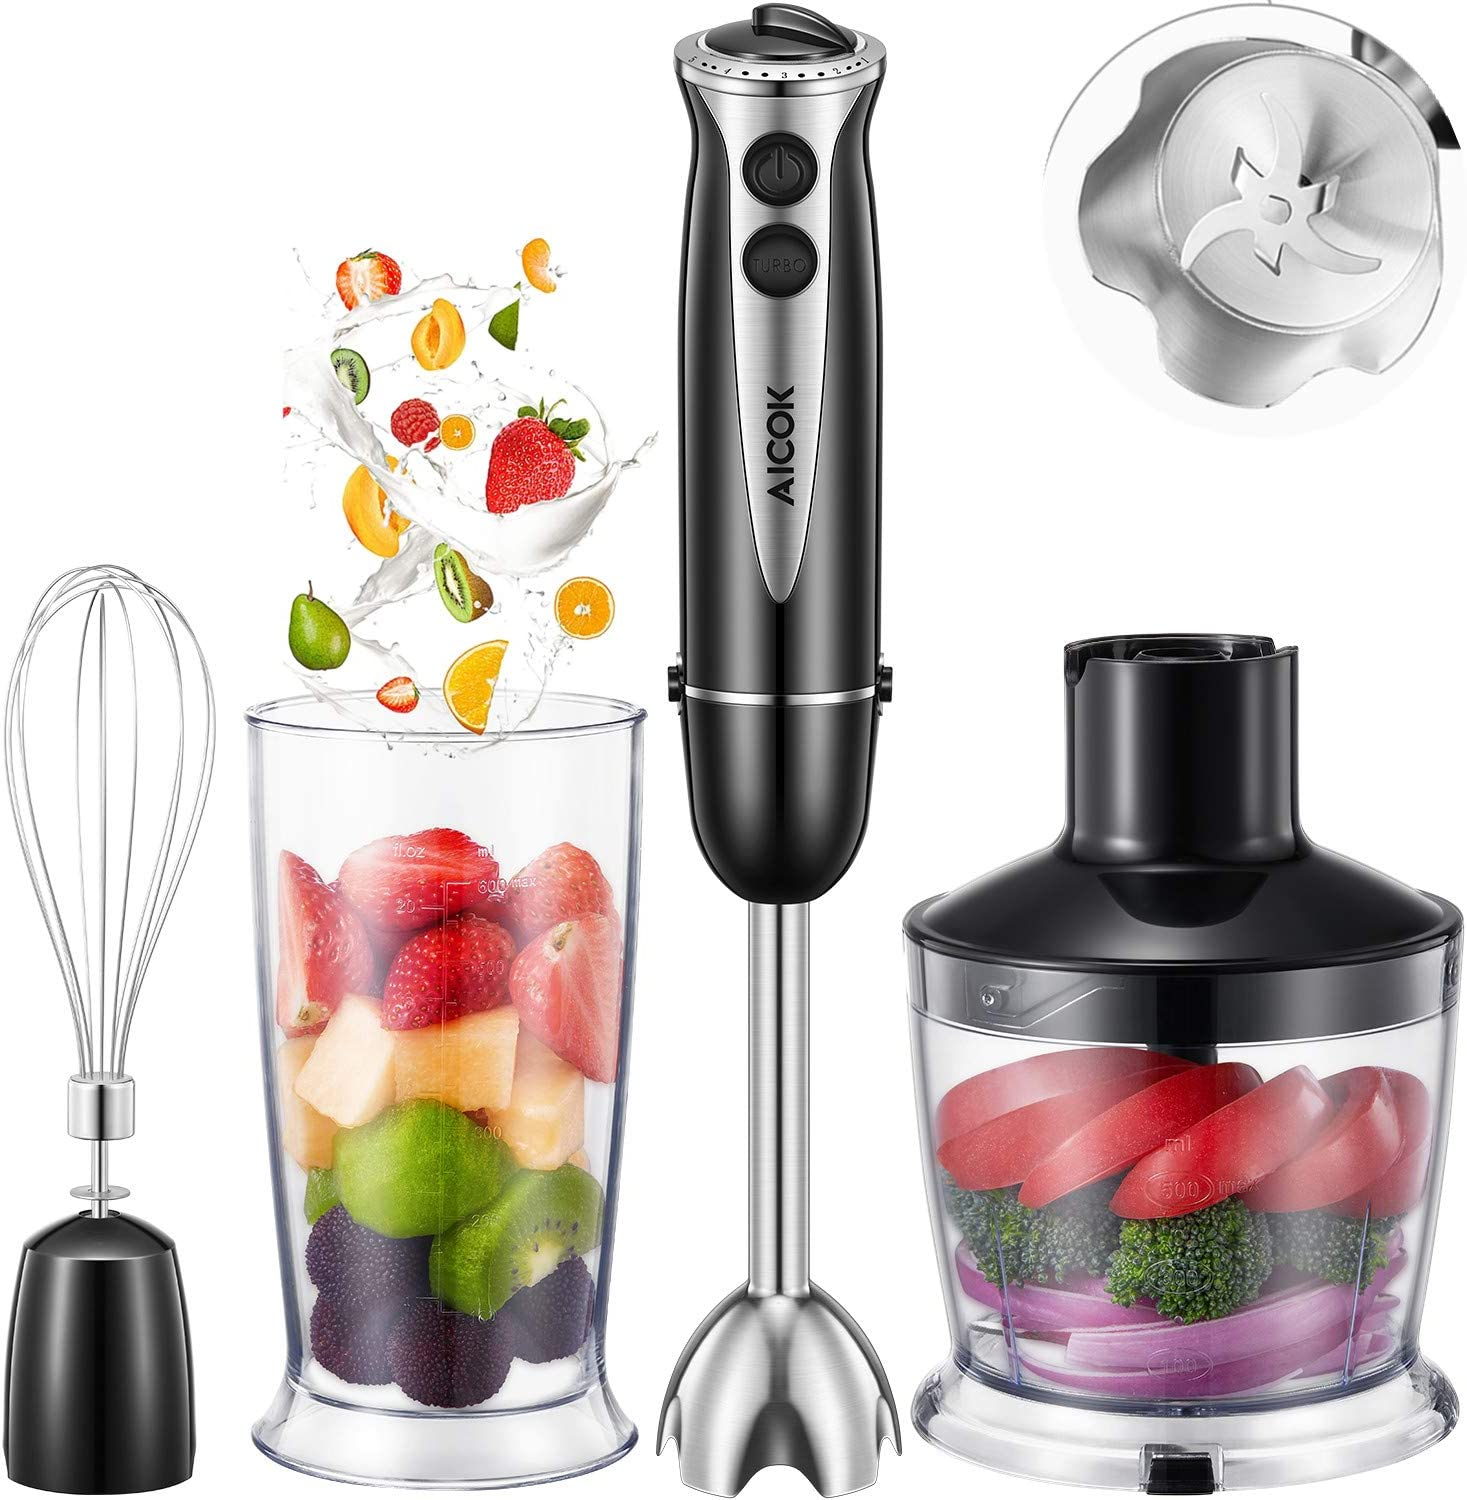 Aicok 4 in 1 Multi-Purpose Immersion Blender, 10-Speed Hand Blender with 6-Leaf Stainless Steel blades for Baby Food, Juices, Sauces and Soup, Includes BPA-Free Food Chopper Egg Whisk Beaker